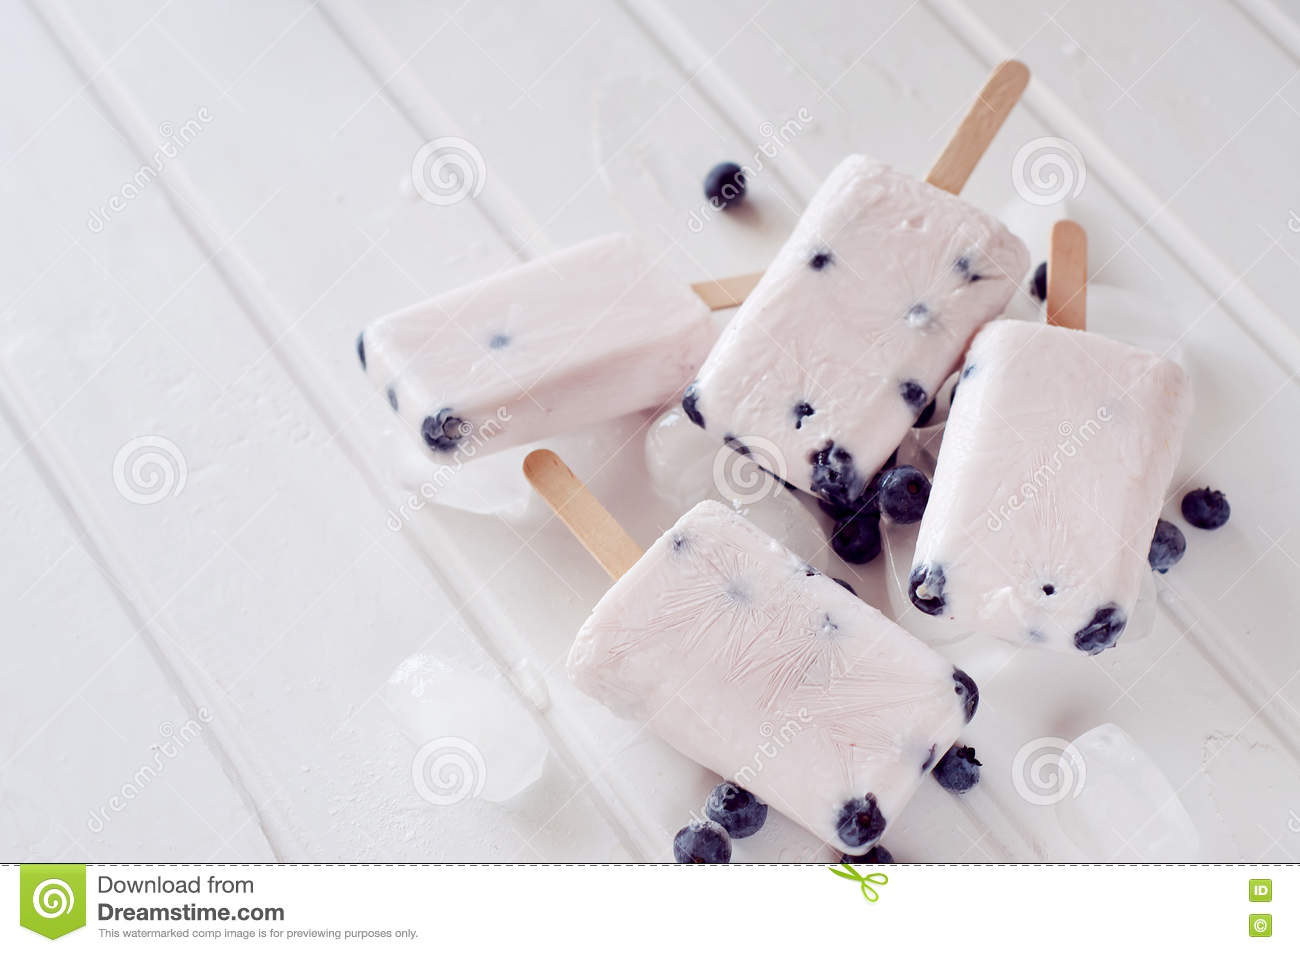 Ice Popsicles With Yogurt And Blueberries In Ice Lolly Mold Stock